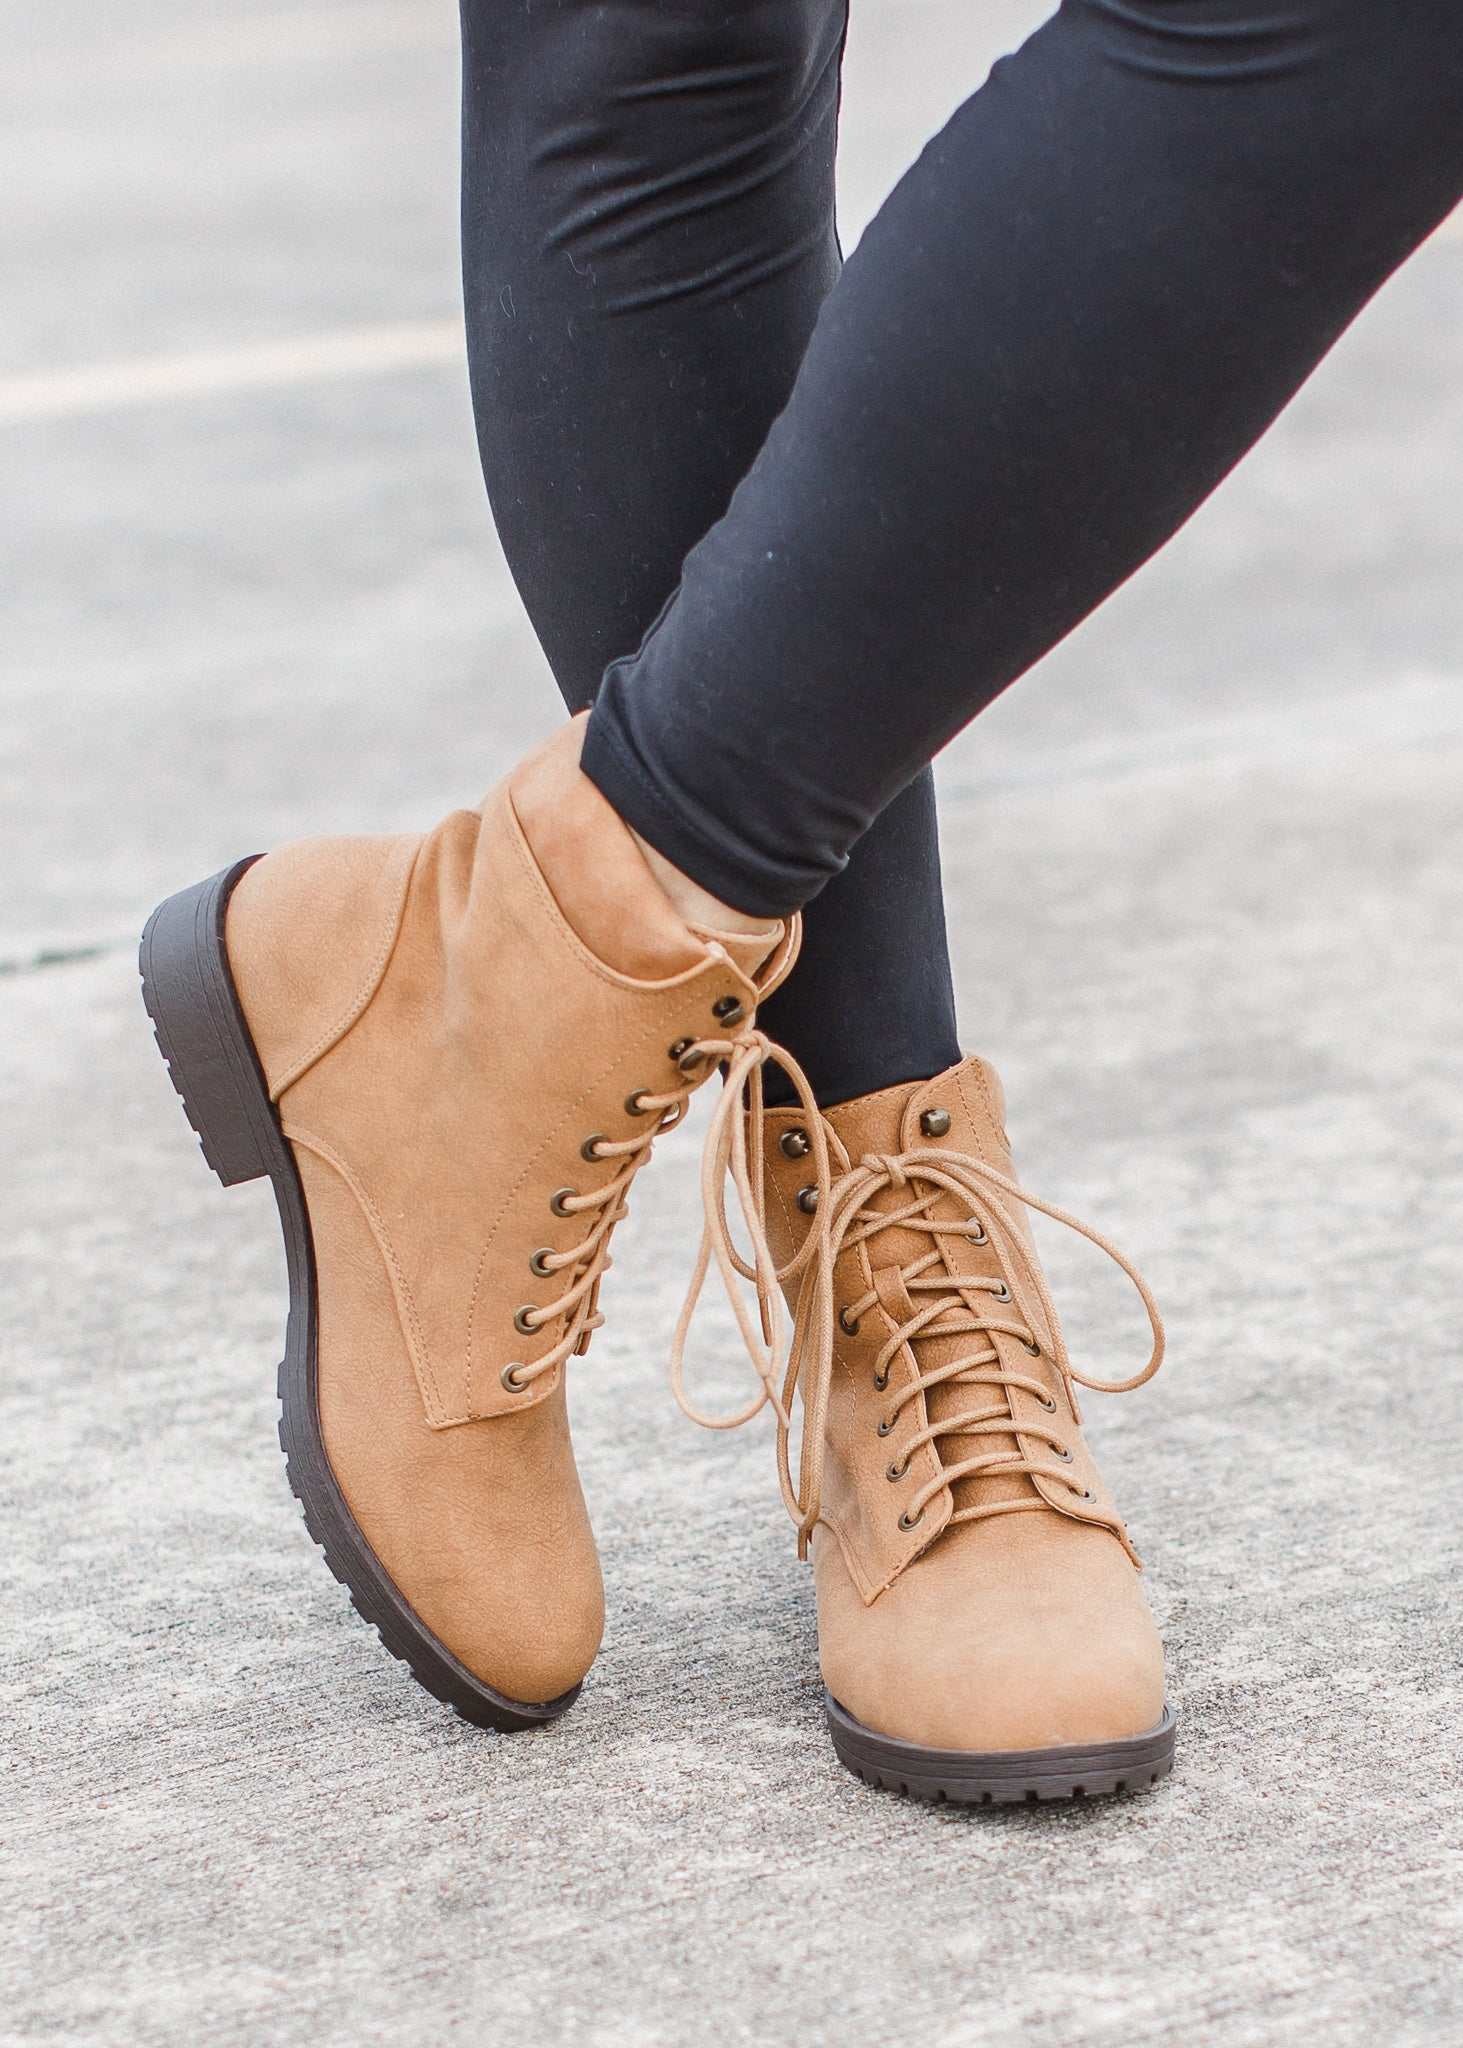 Roadside Boots (5.5-10) *TAN **SIZE UP 1/2 SIZE.